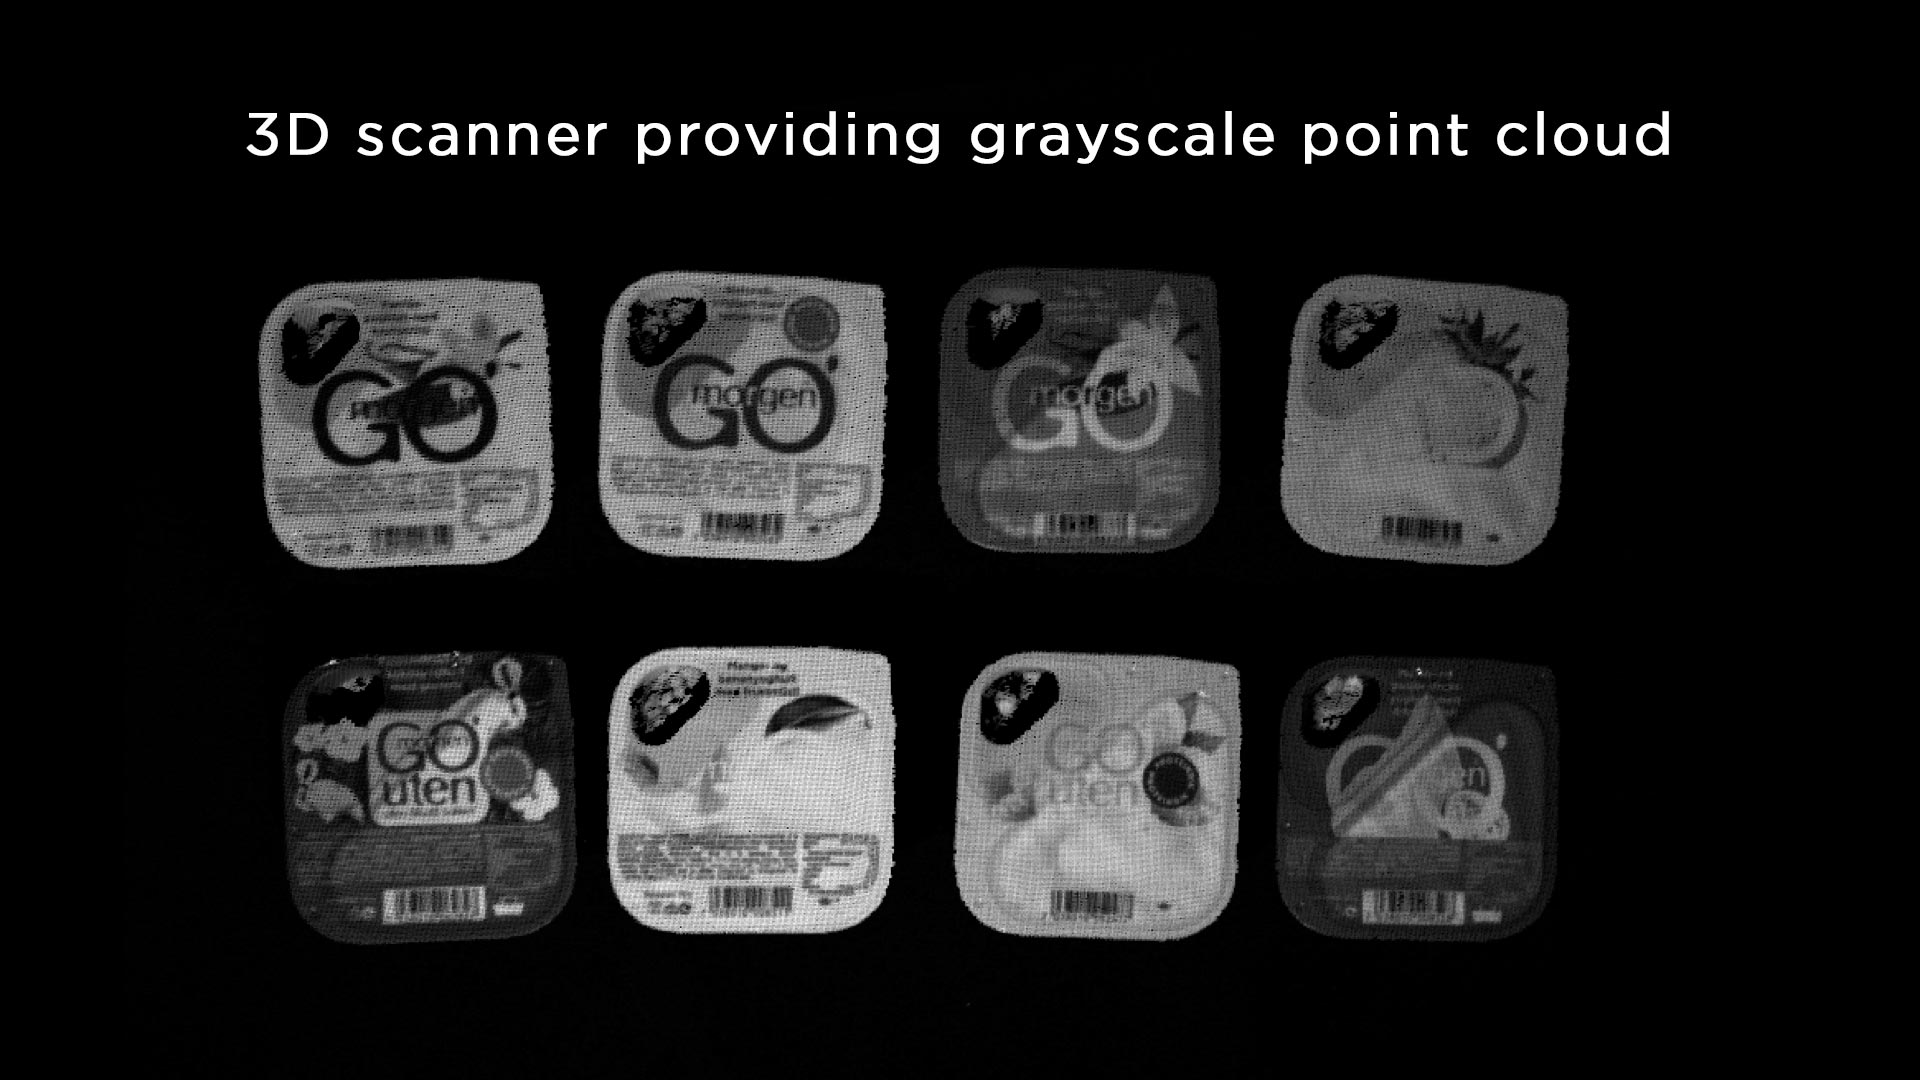 Greyscale separate 3D bin-picking objects